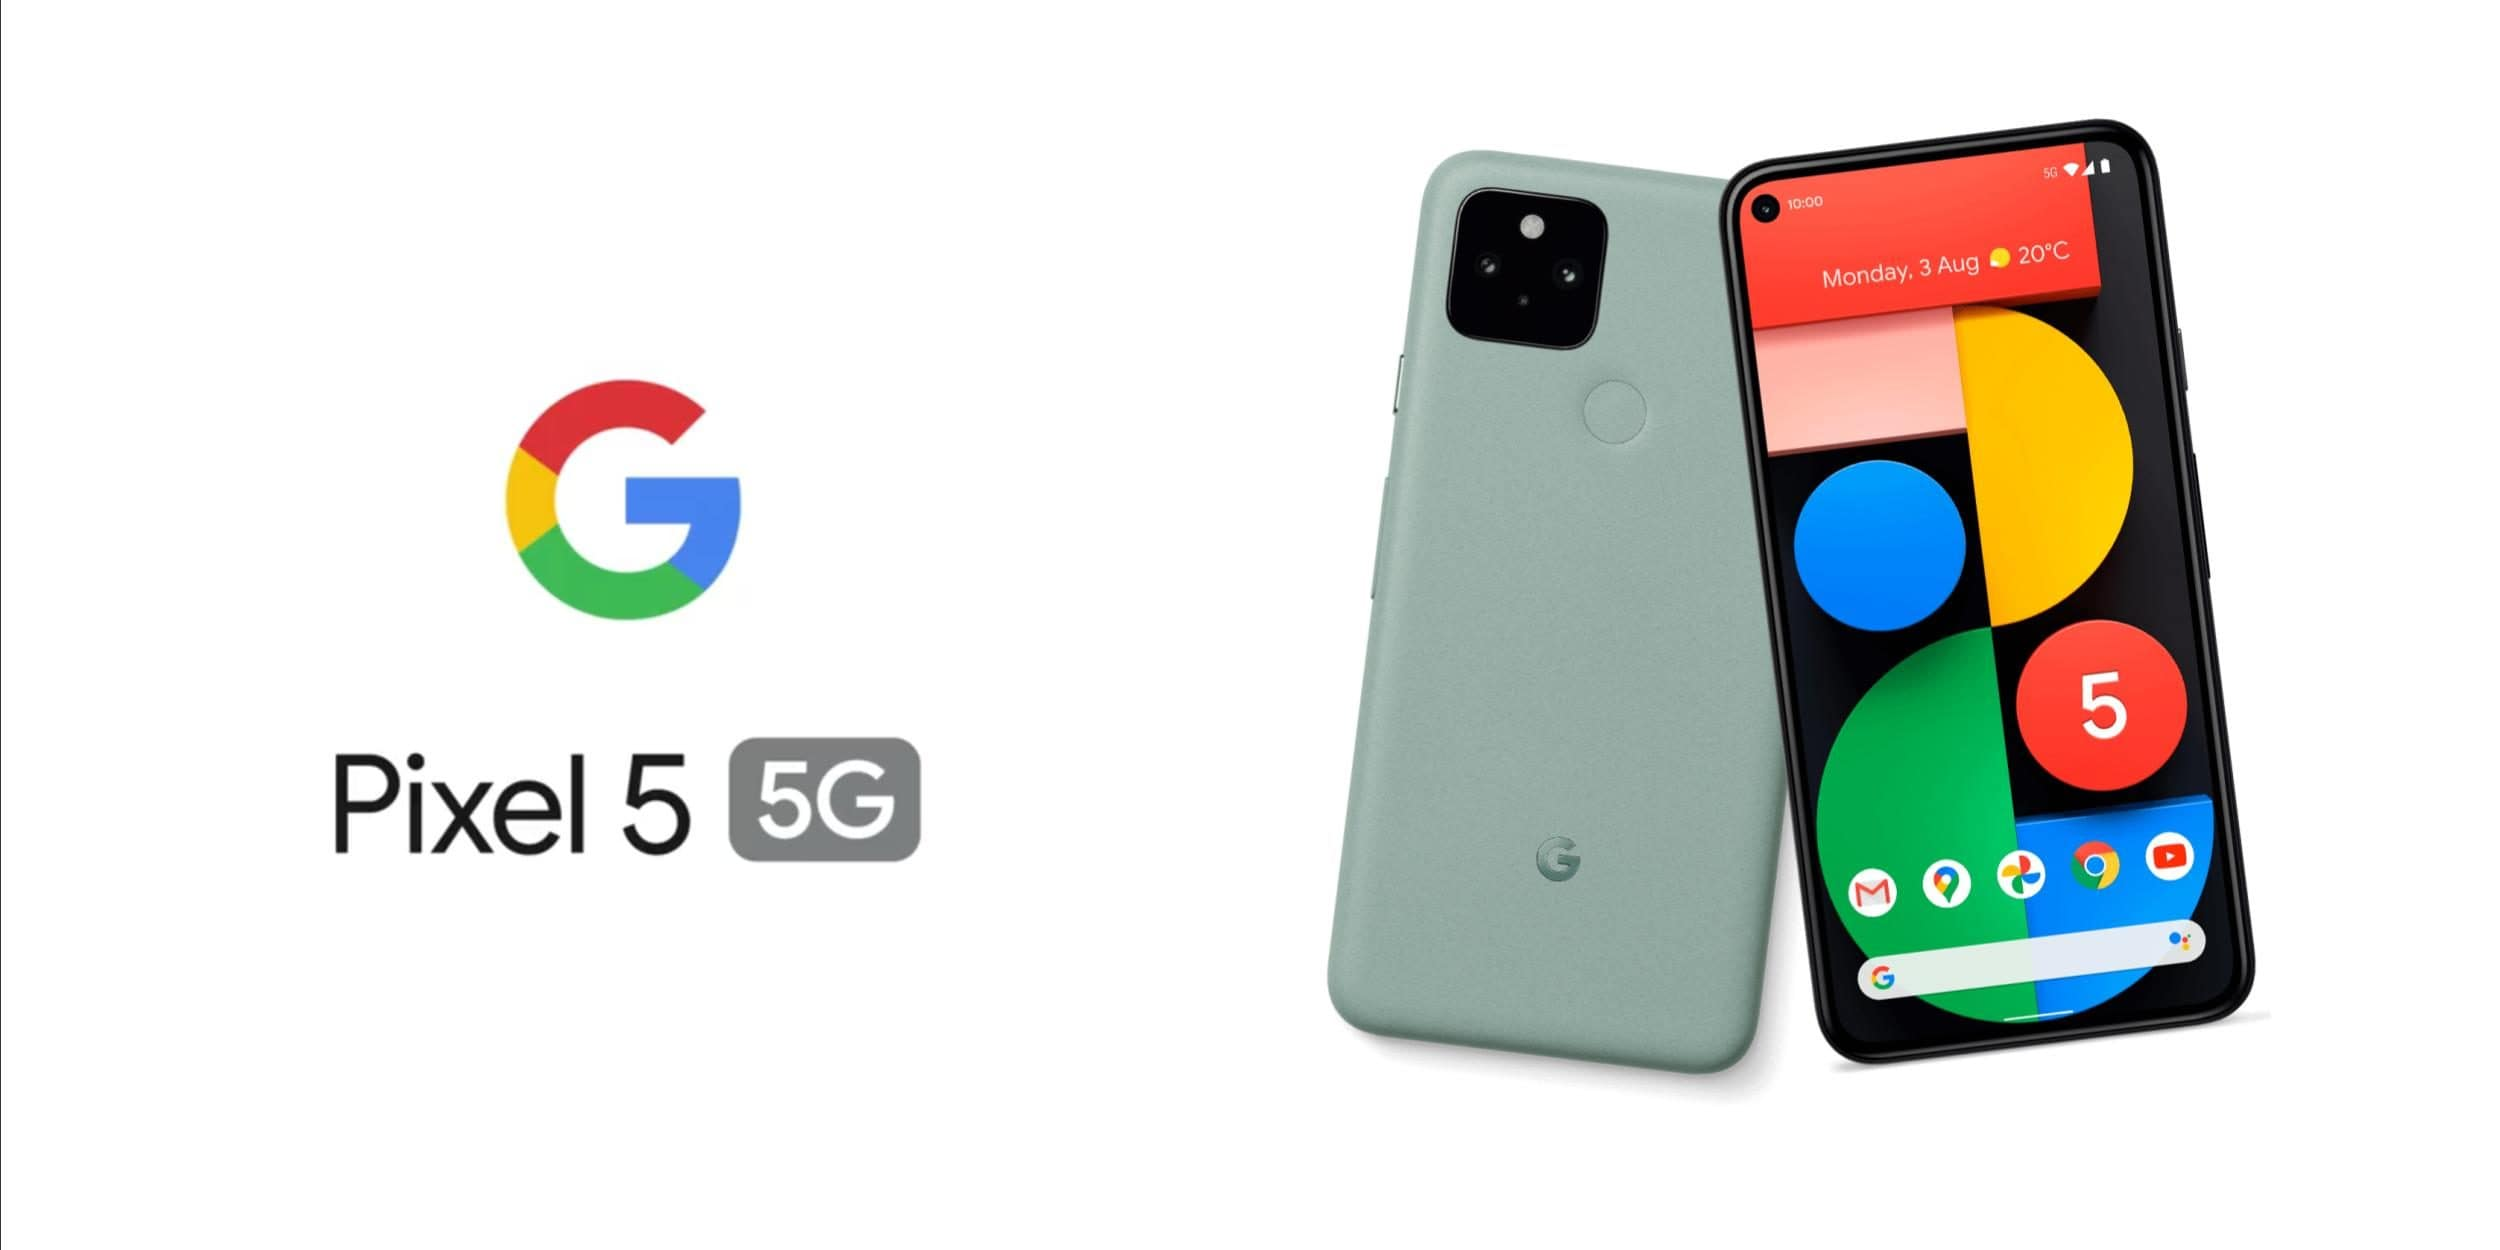 Presented Pixel 5 and Pixel 4a 5G